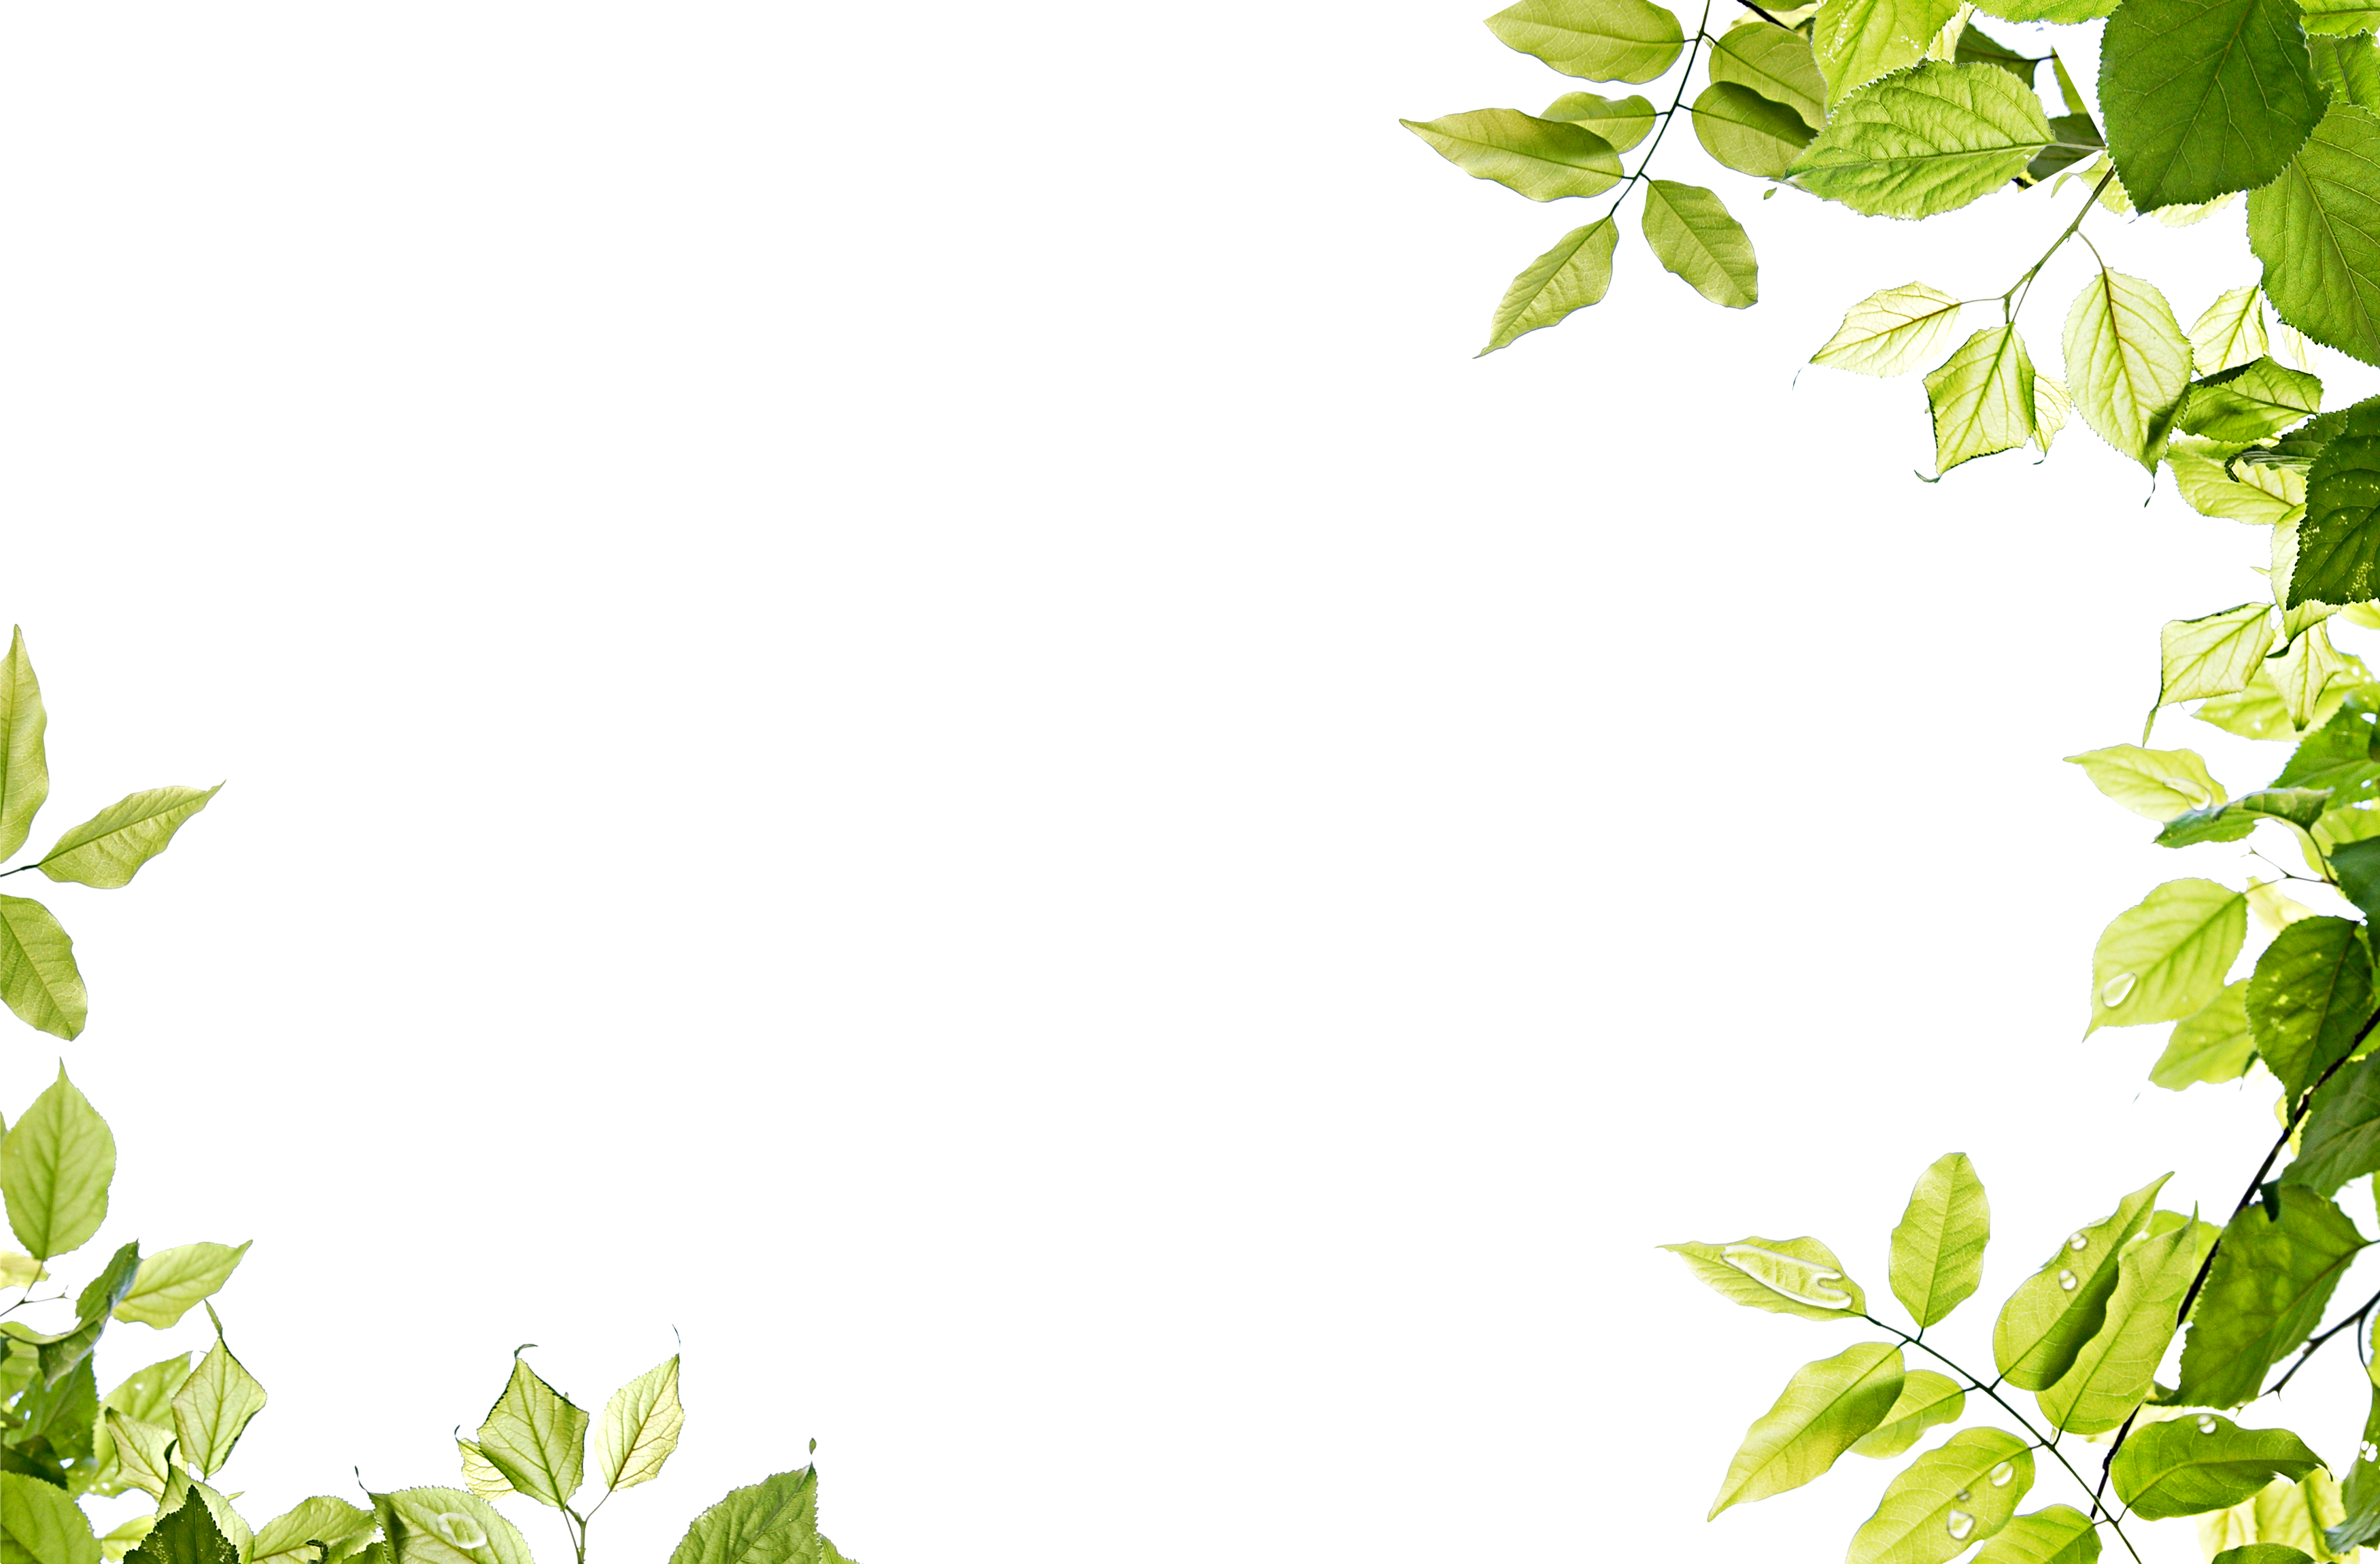 Jungle clipart nature frame. Png transparent free images